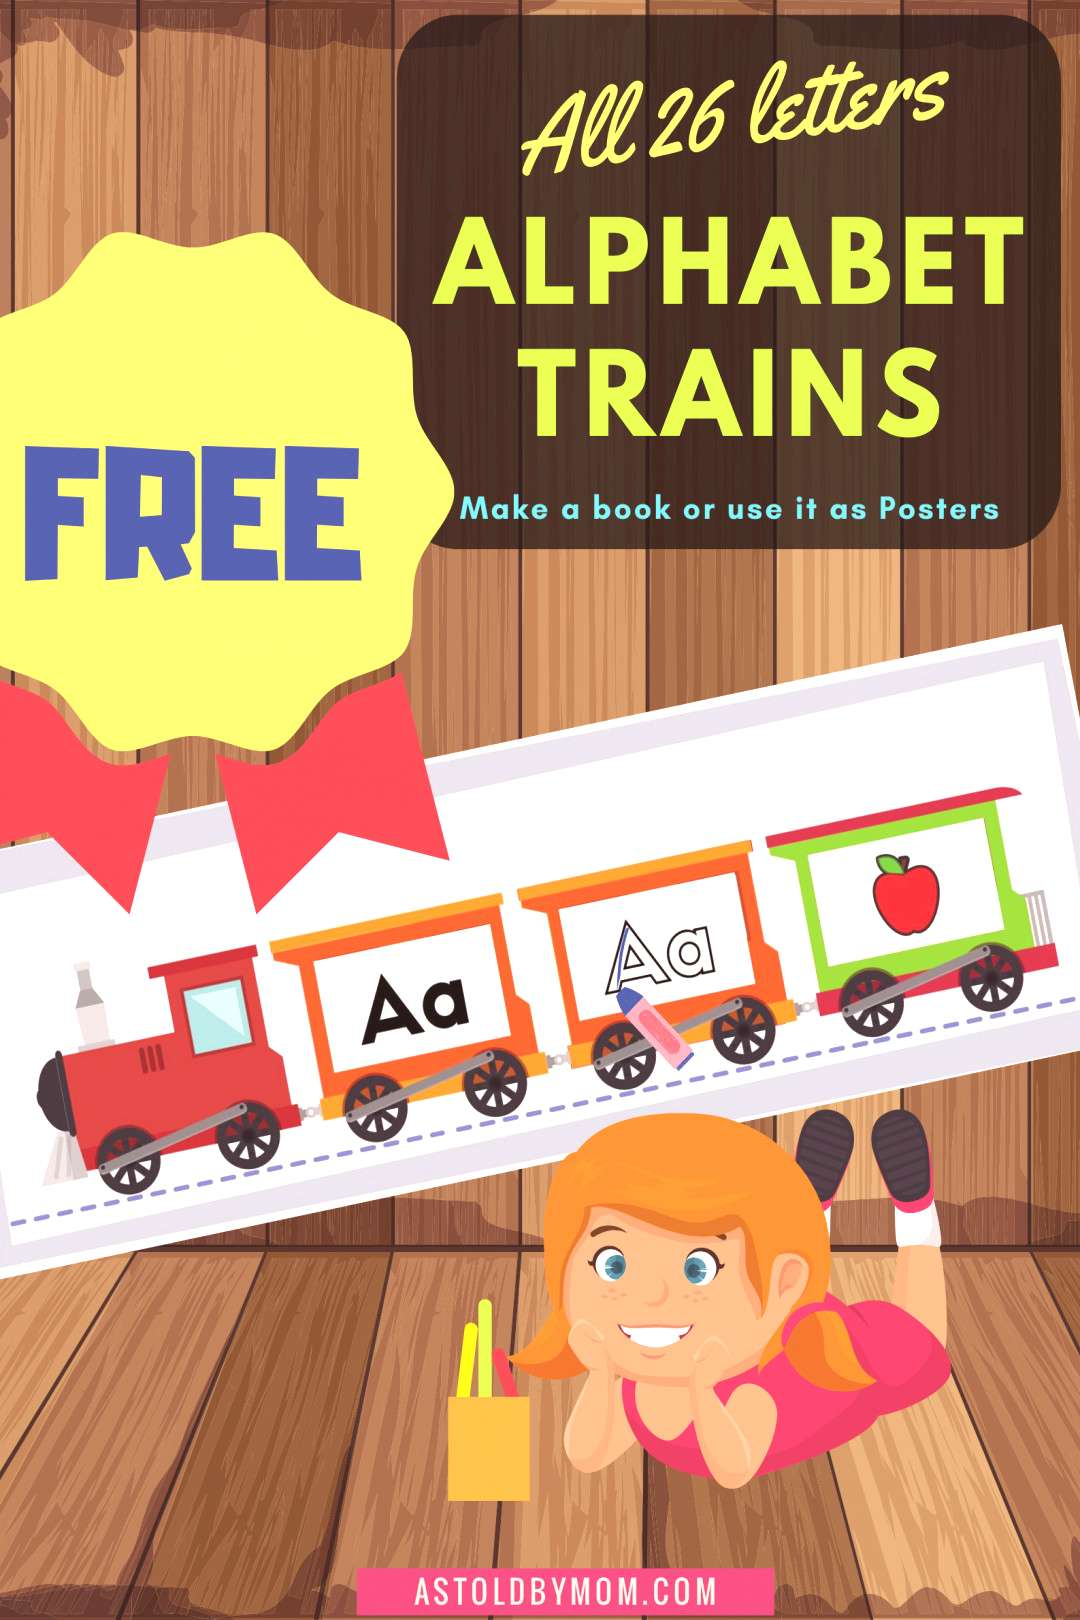 Homeschool FREE Alphabet Book CRAFTS for kids to download READ TRACE Color PHONICS. Getting Bored